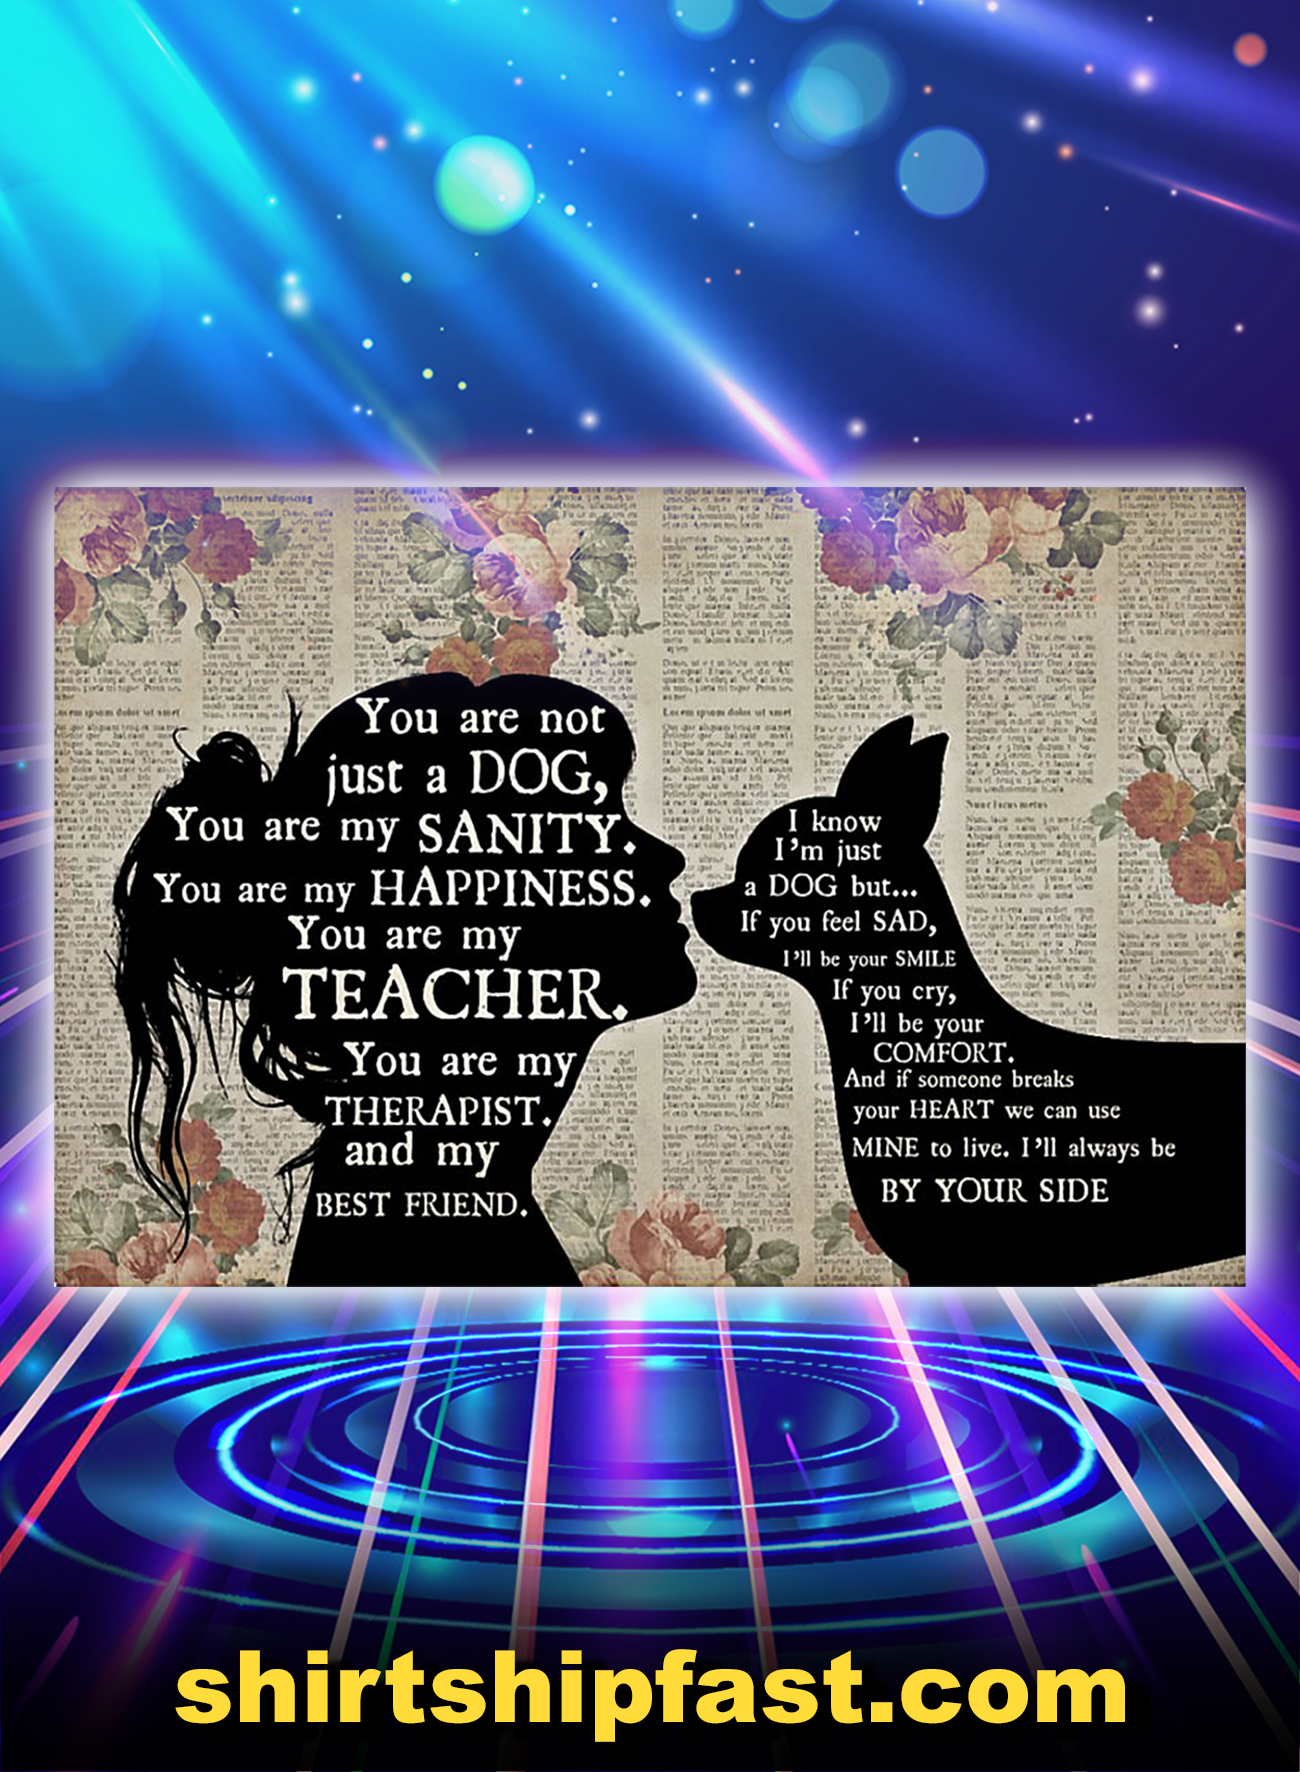 Chihuahua girl therapist best friend poster - A1